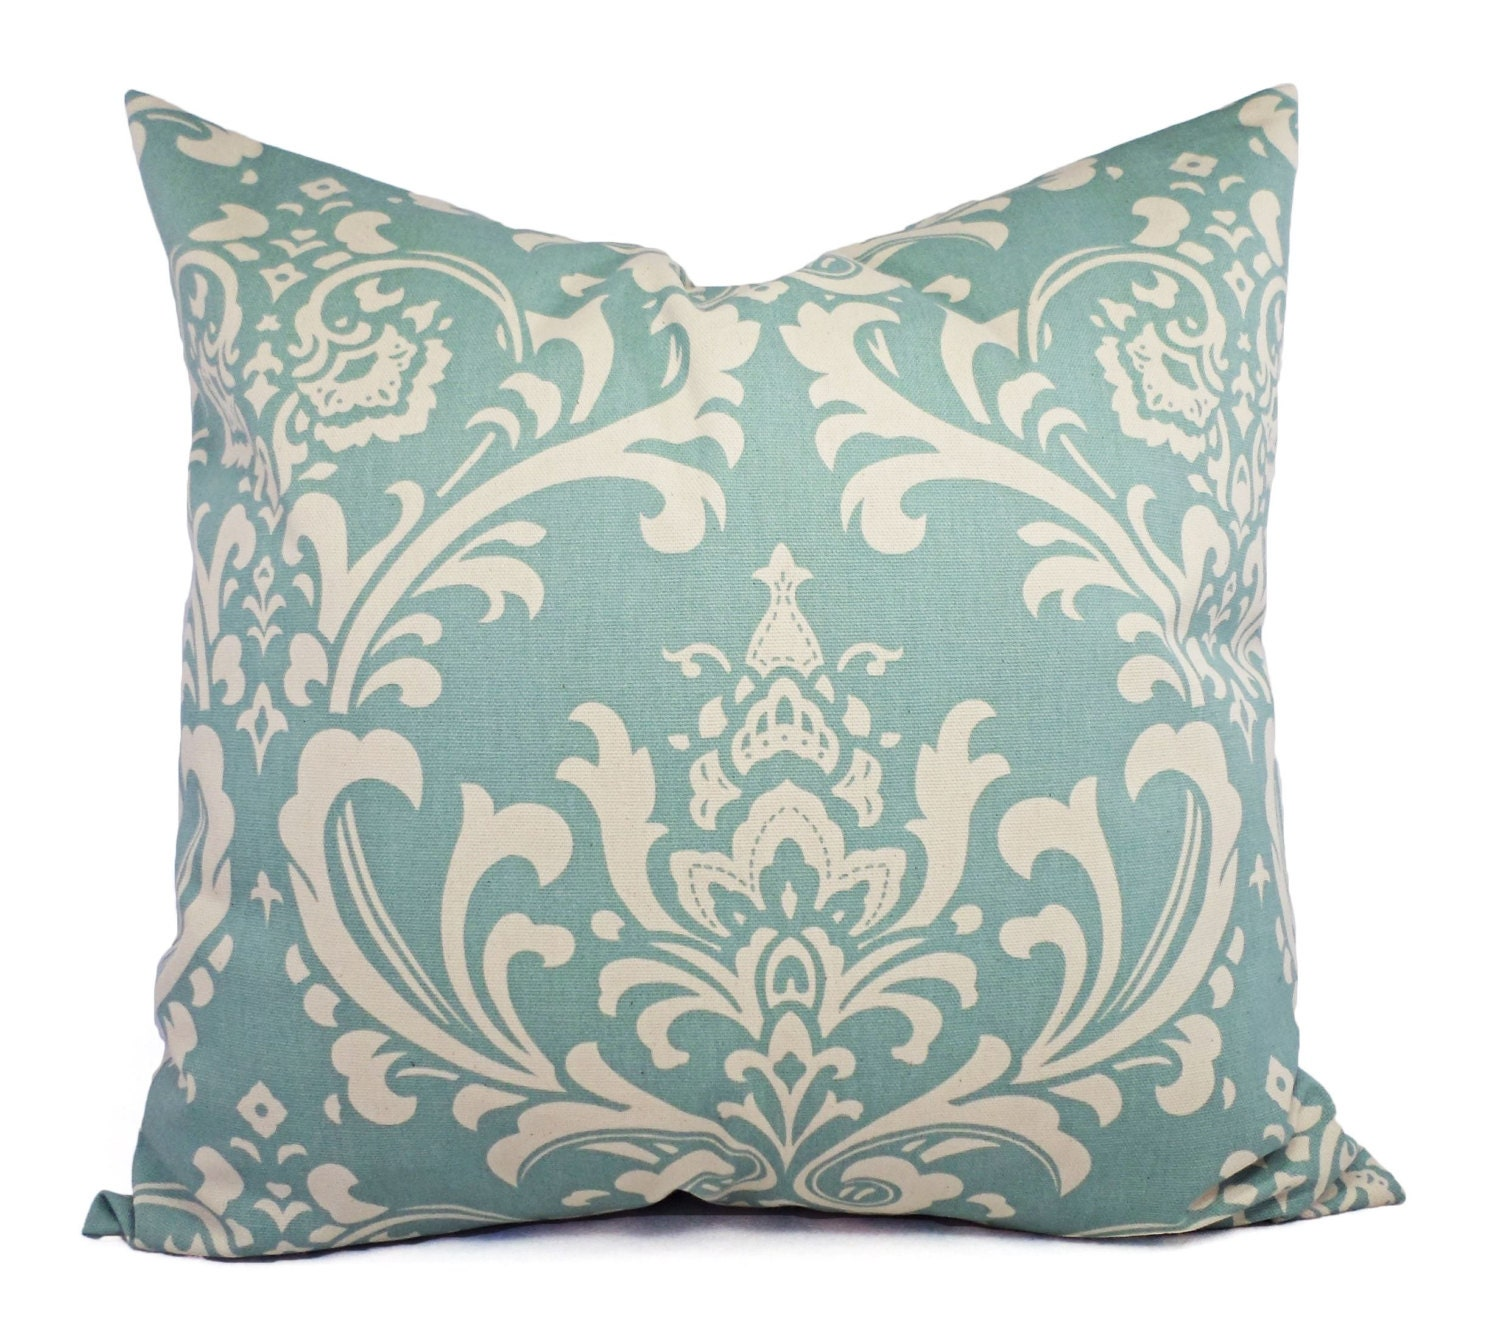 Spa Blue Throw Pillow Cover : Two Pillow Covers Two Spa Blue Damask Decorative Pillow